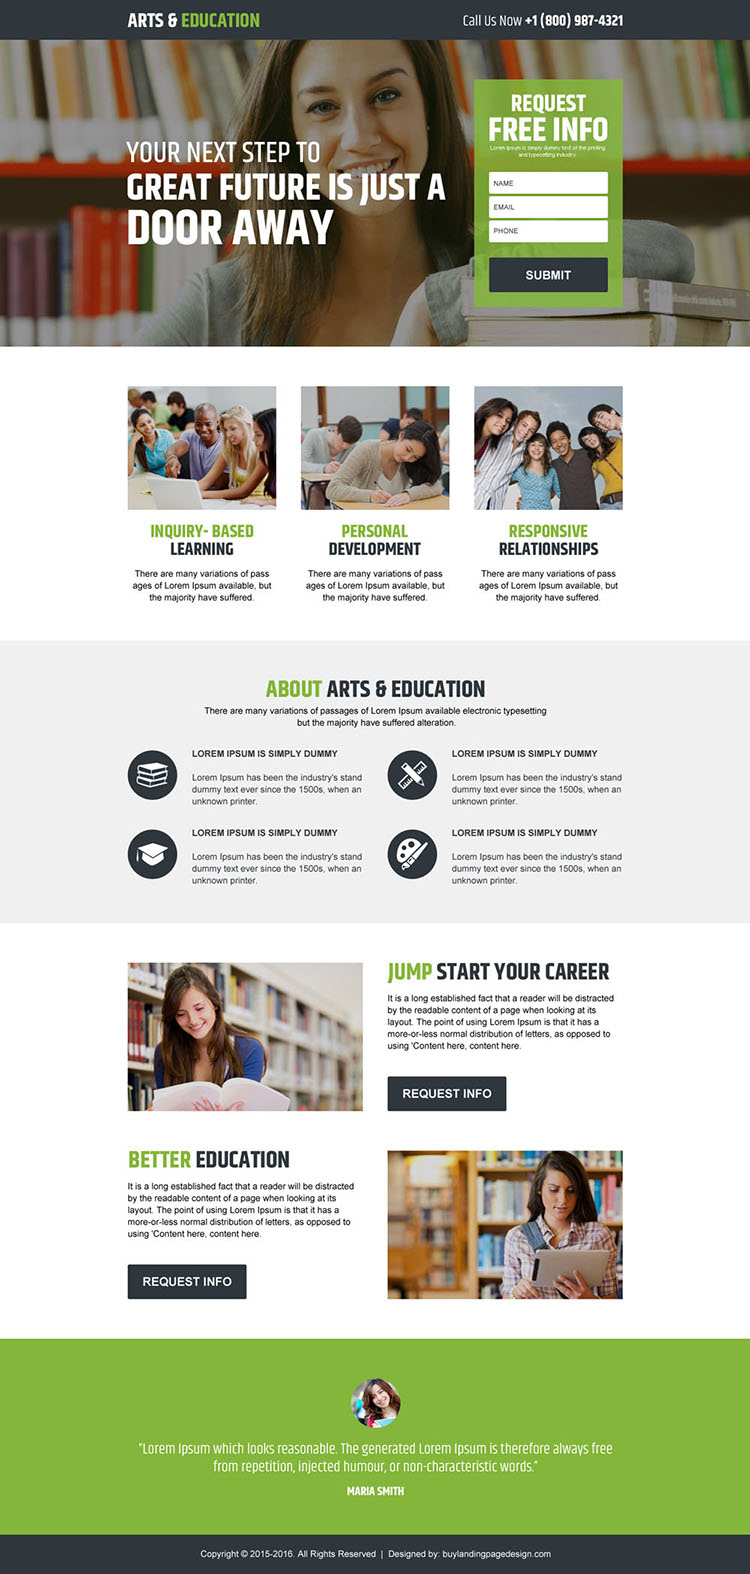 art and education free information lead generating landing page